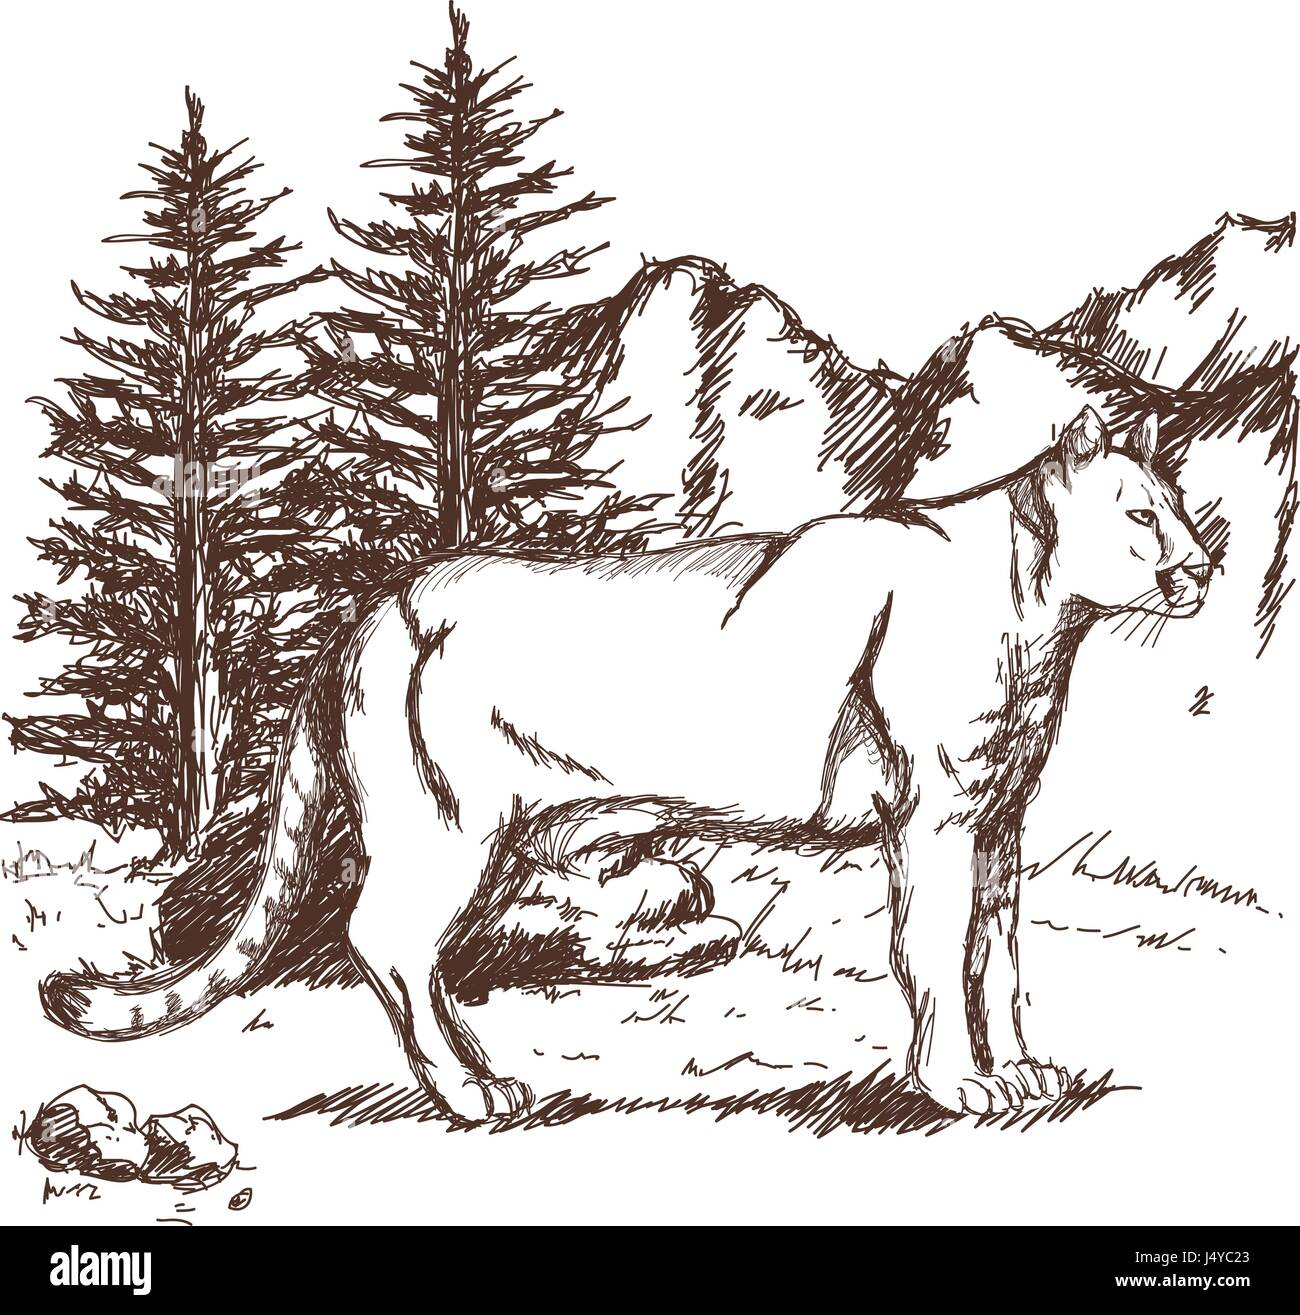 Landscape Mountain Sketch High Resolution Stock Photography And Images Alamy Capitals matter in the commands also important: https www alamy com stock photo hand drawn cougar or mountain lion landscape animal sketch wildlife 140743739 html